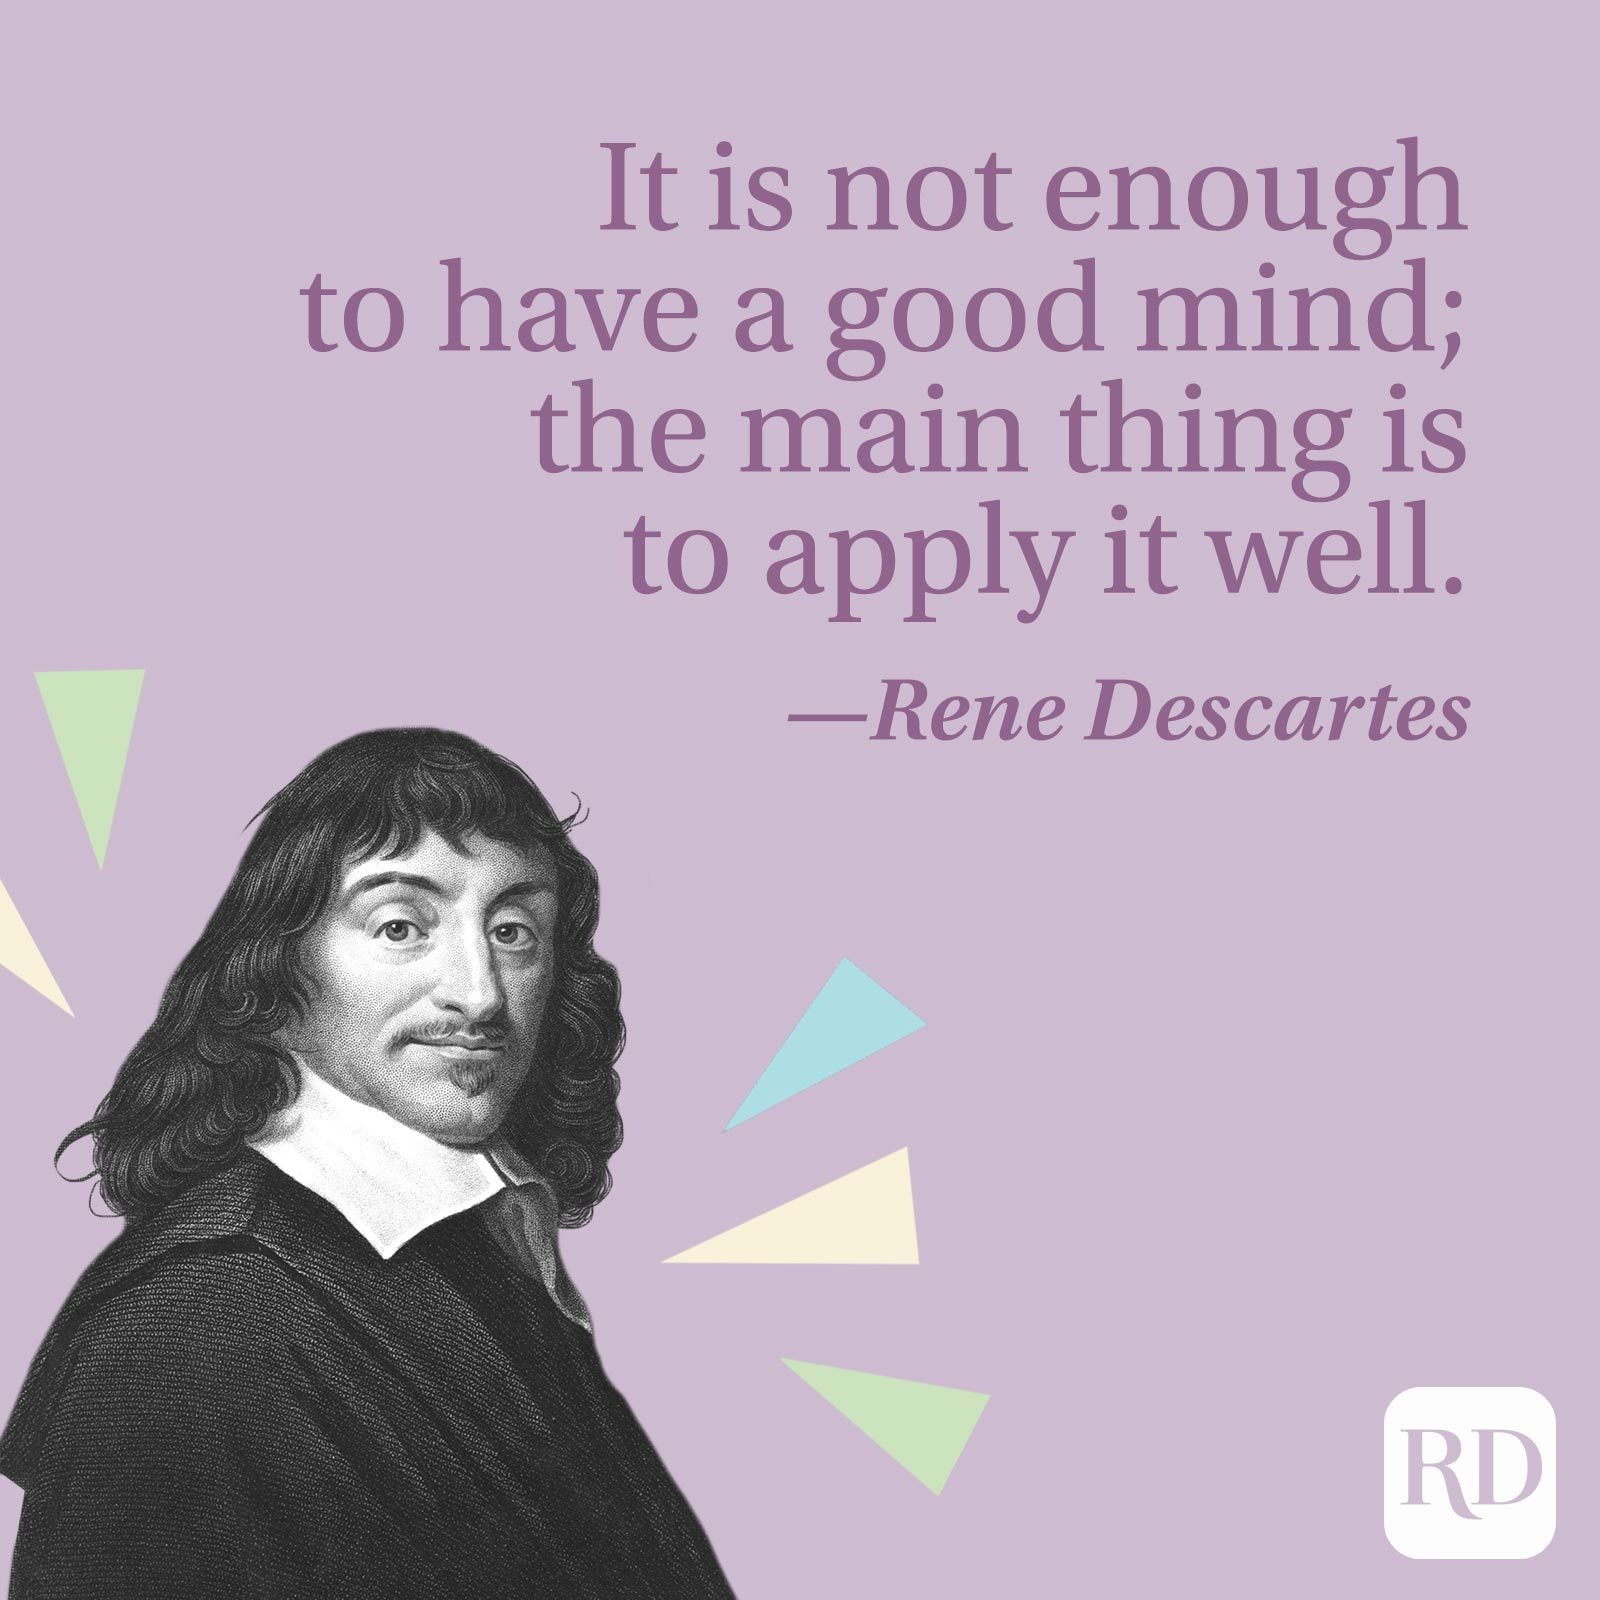 """""""It is not enough to have a good mind; the main thing is to apply it well."""" —Rene Descartes"""